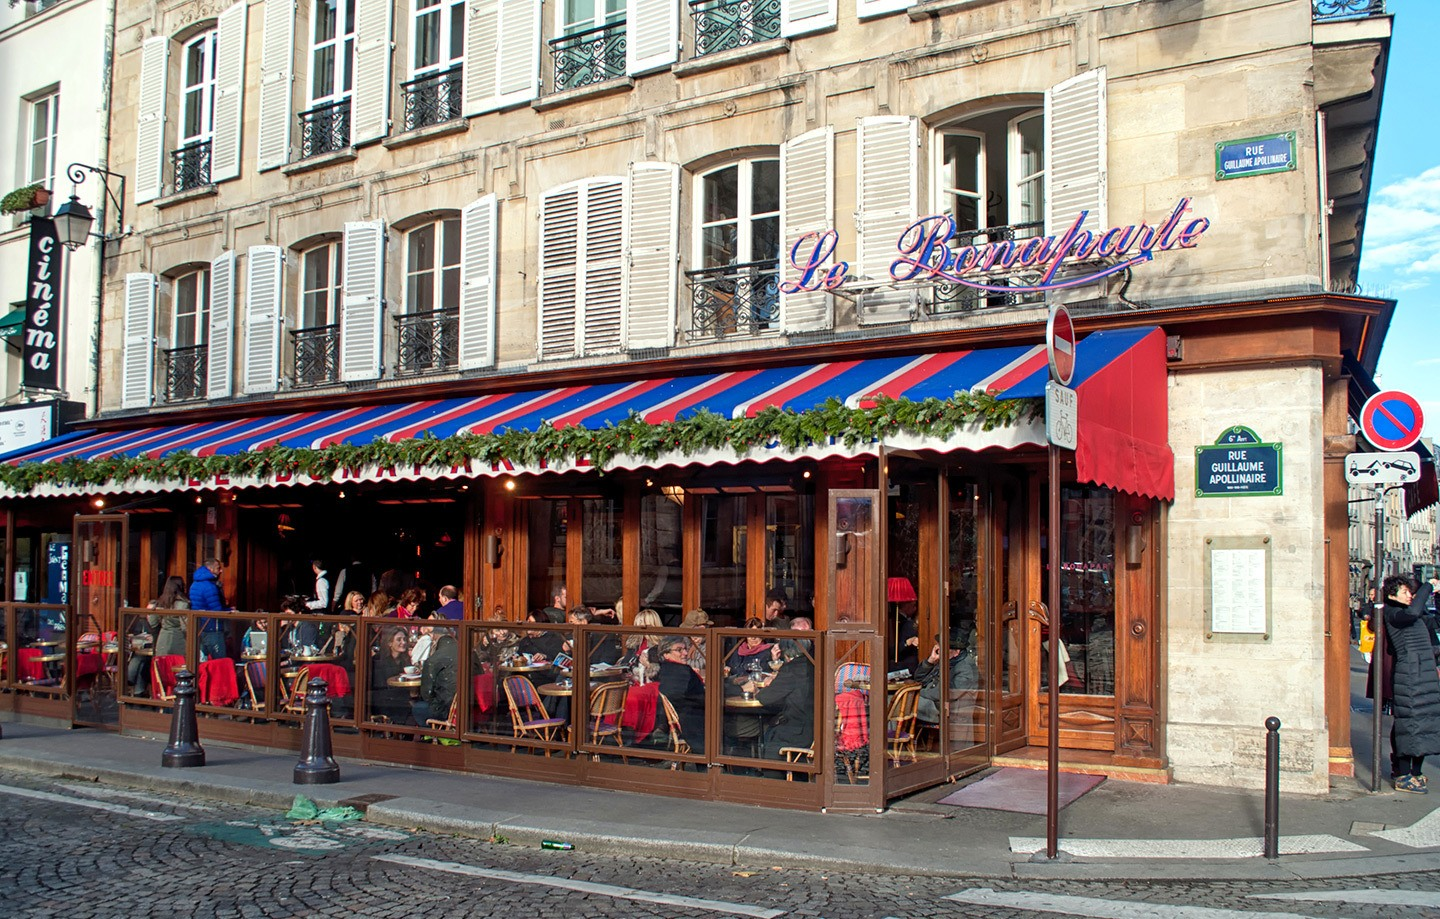 The streets of St Germain, Paris: A self-guided walking tour